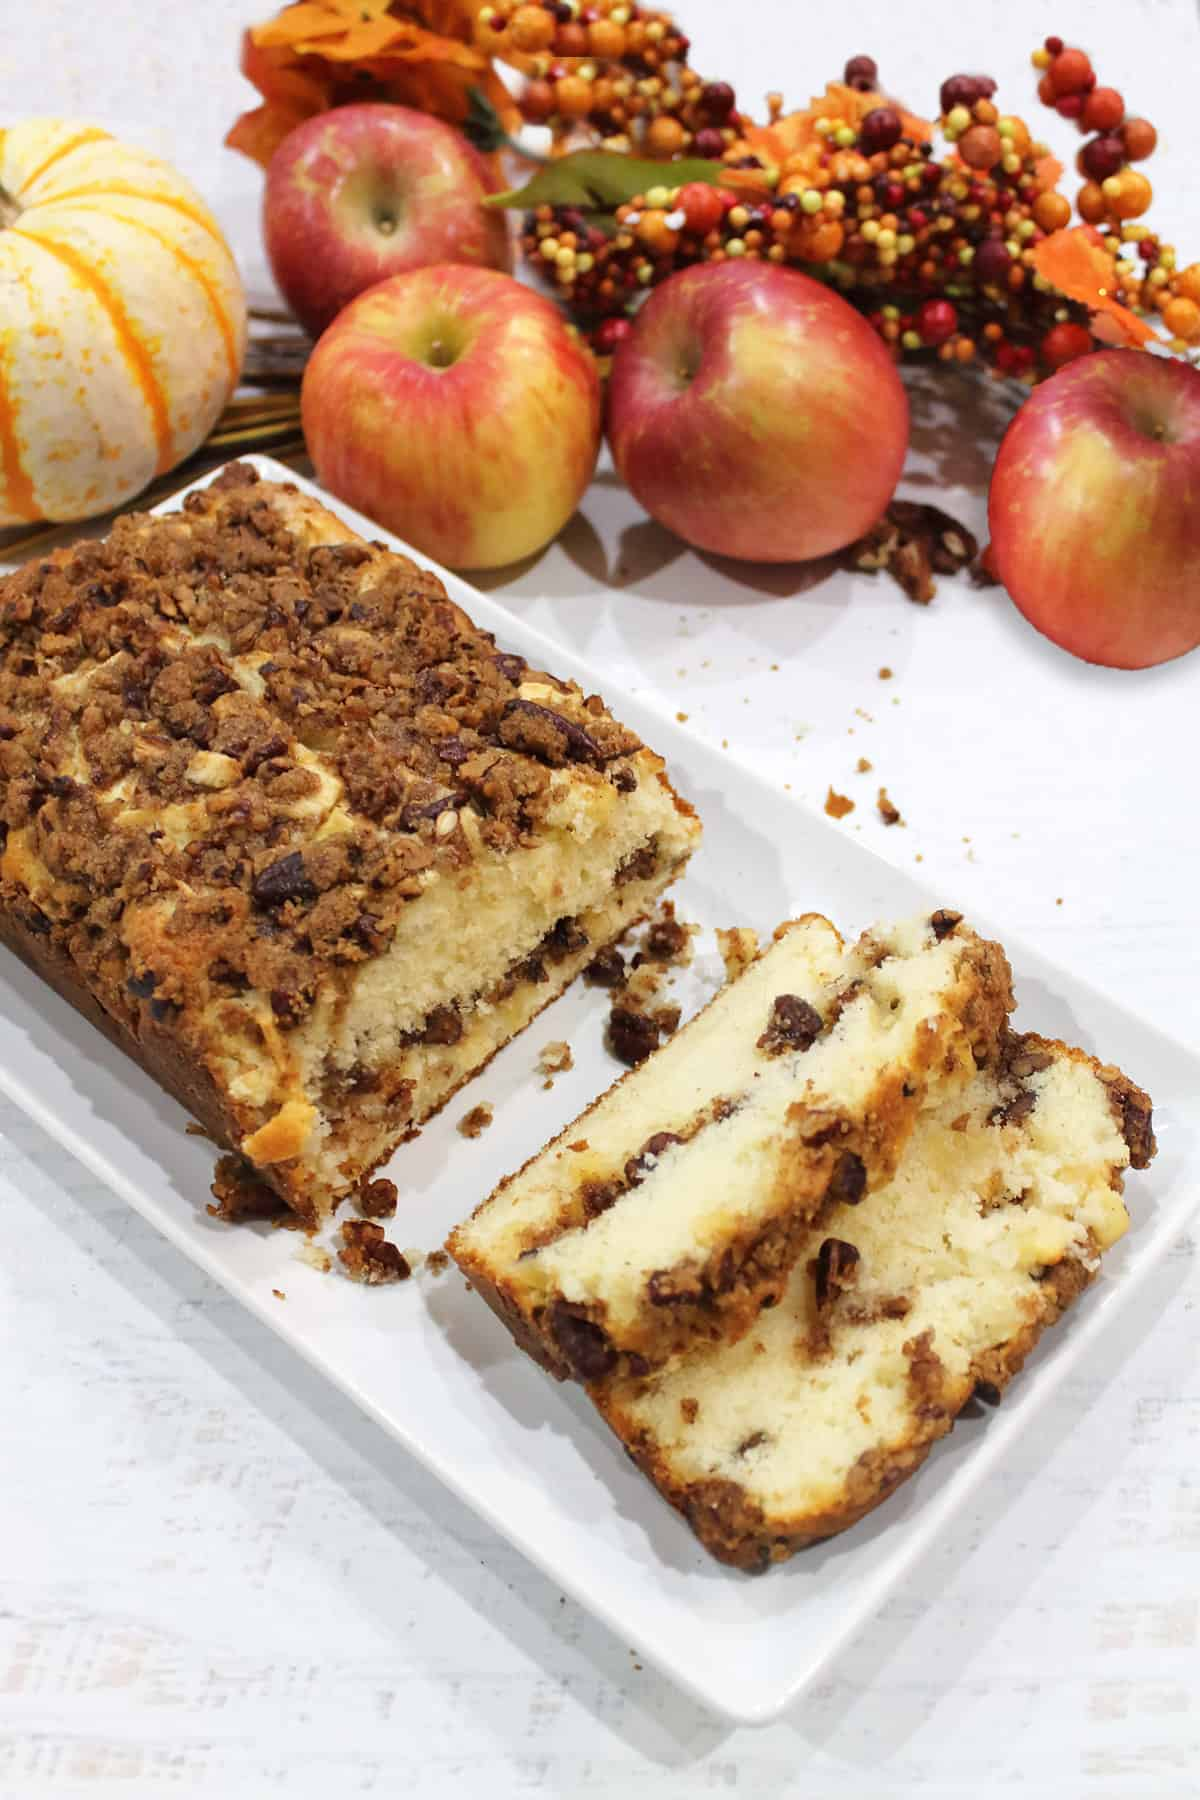 Cinnamon Apple Streusel Bread sliced on white platter with fall apples and pumpkin in back.